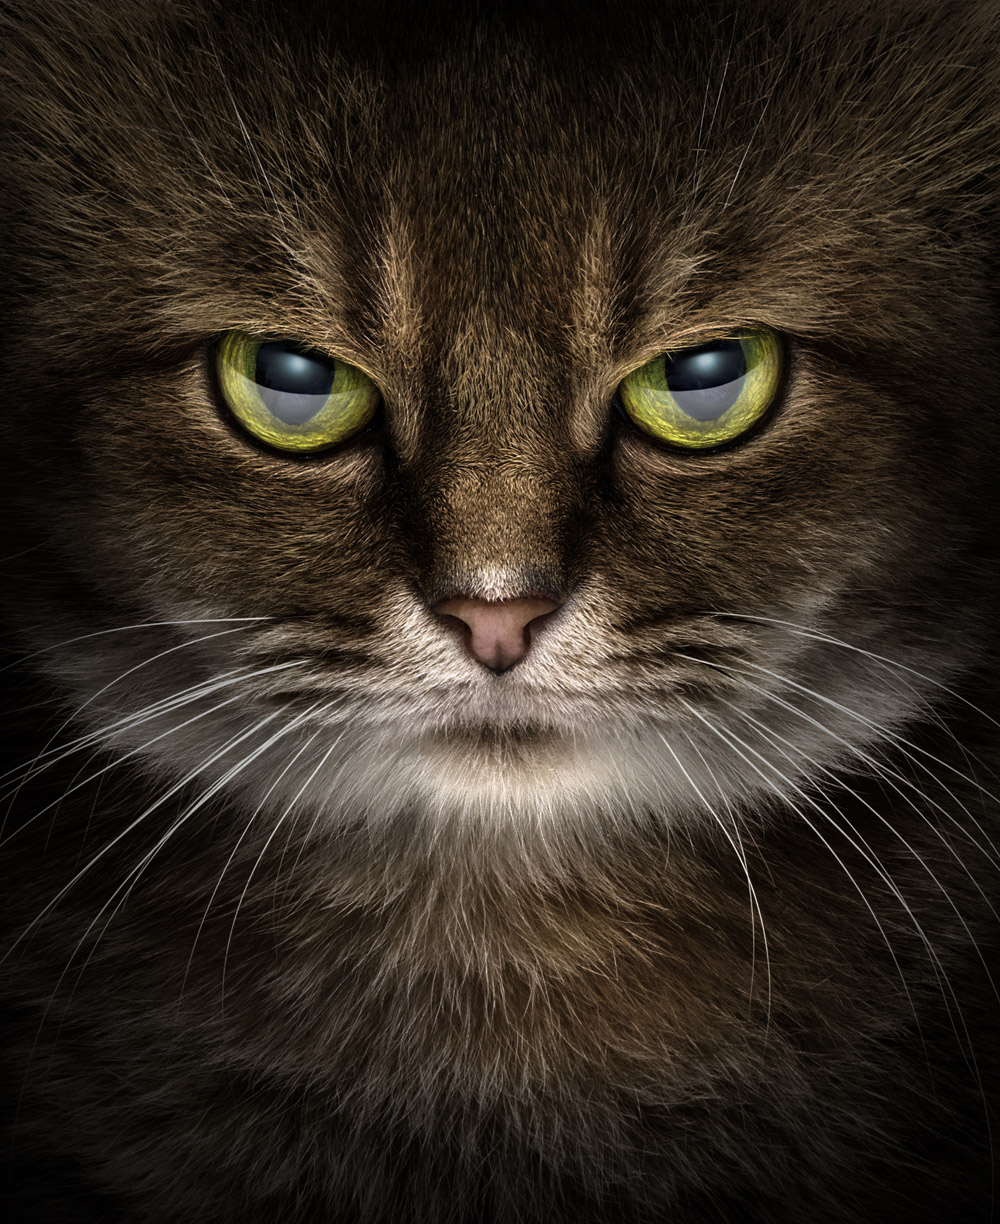 Kitty Stare, Erich Caparas, First Place : Portrait Division - Animals/Pets, 2017 WPPI First Half Competition